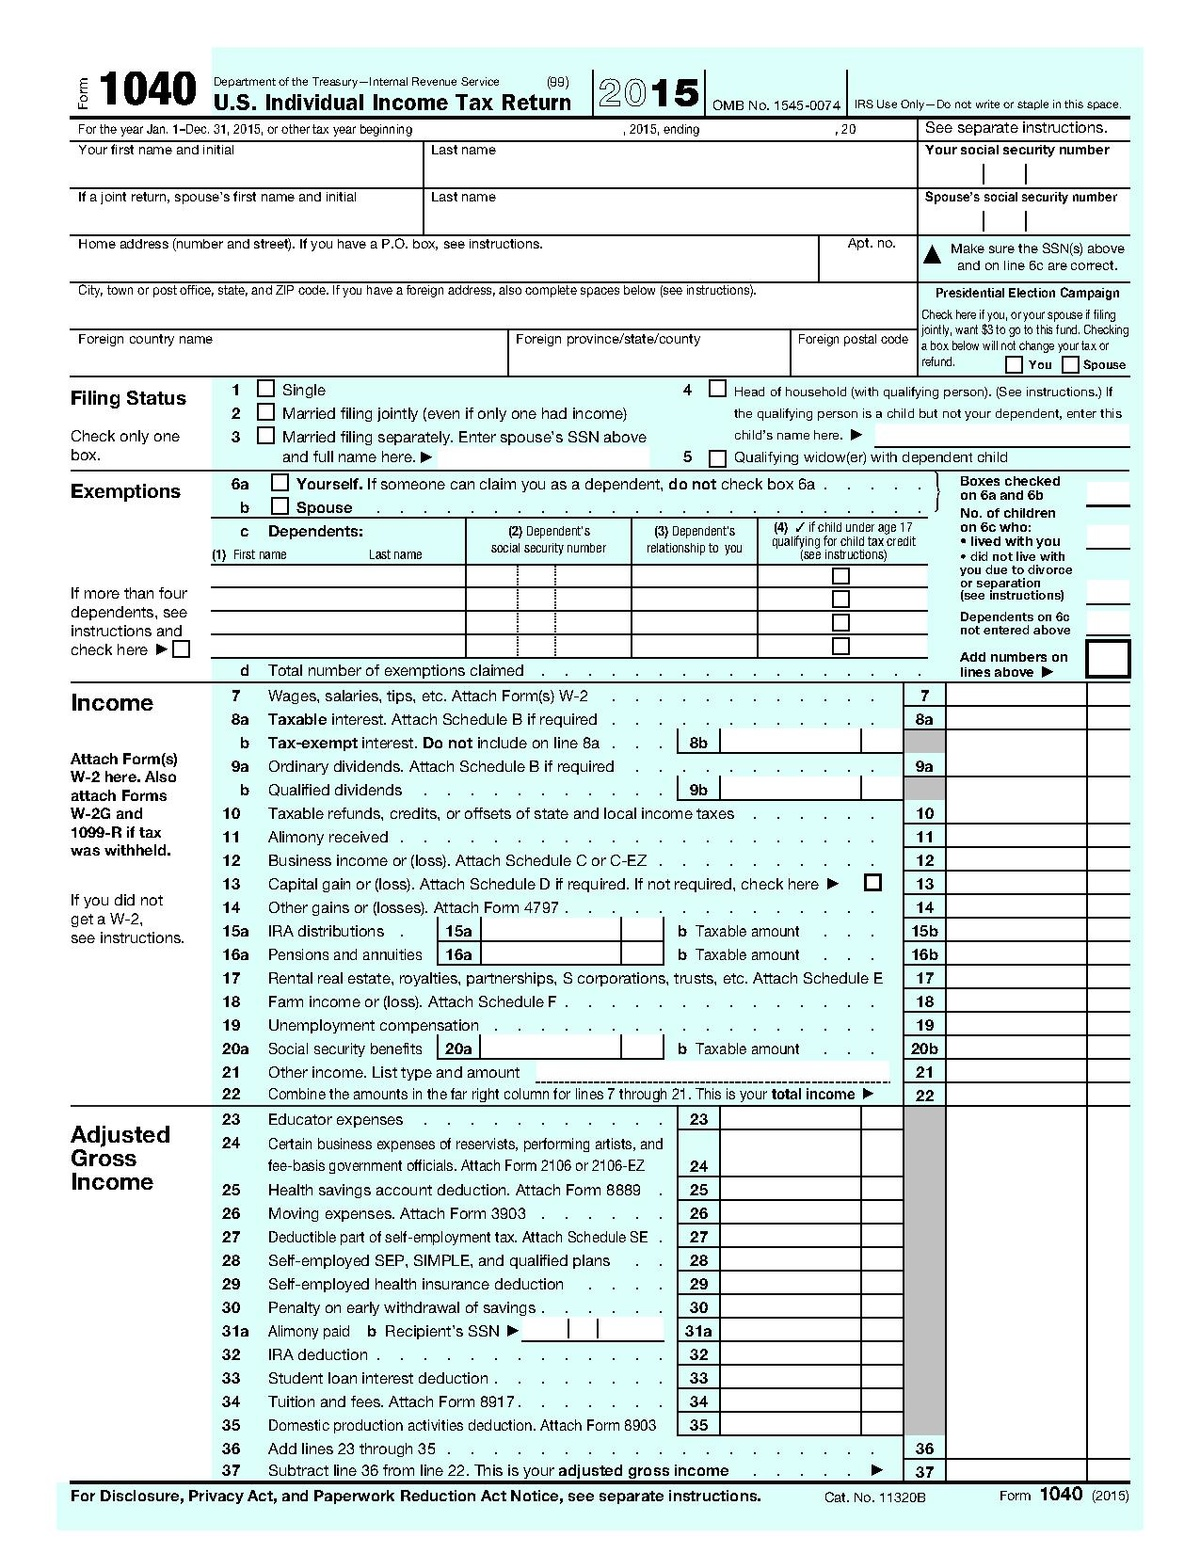 Form 1040 wikipedia ibookread Read Online